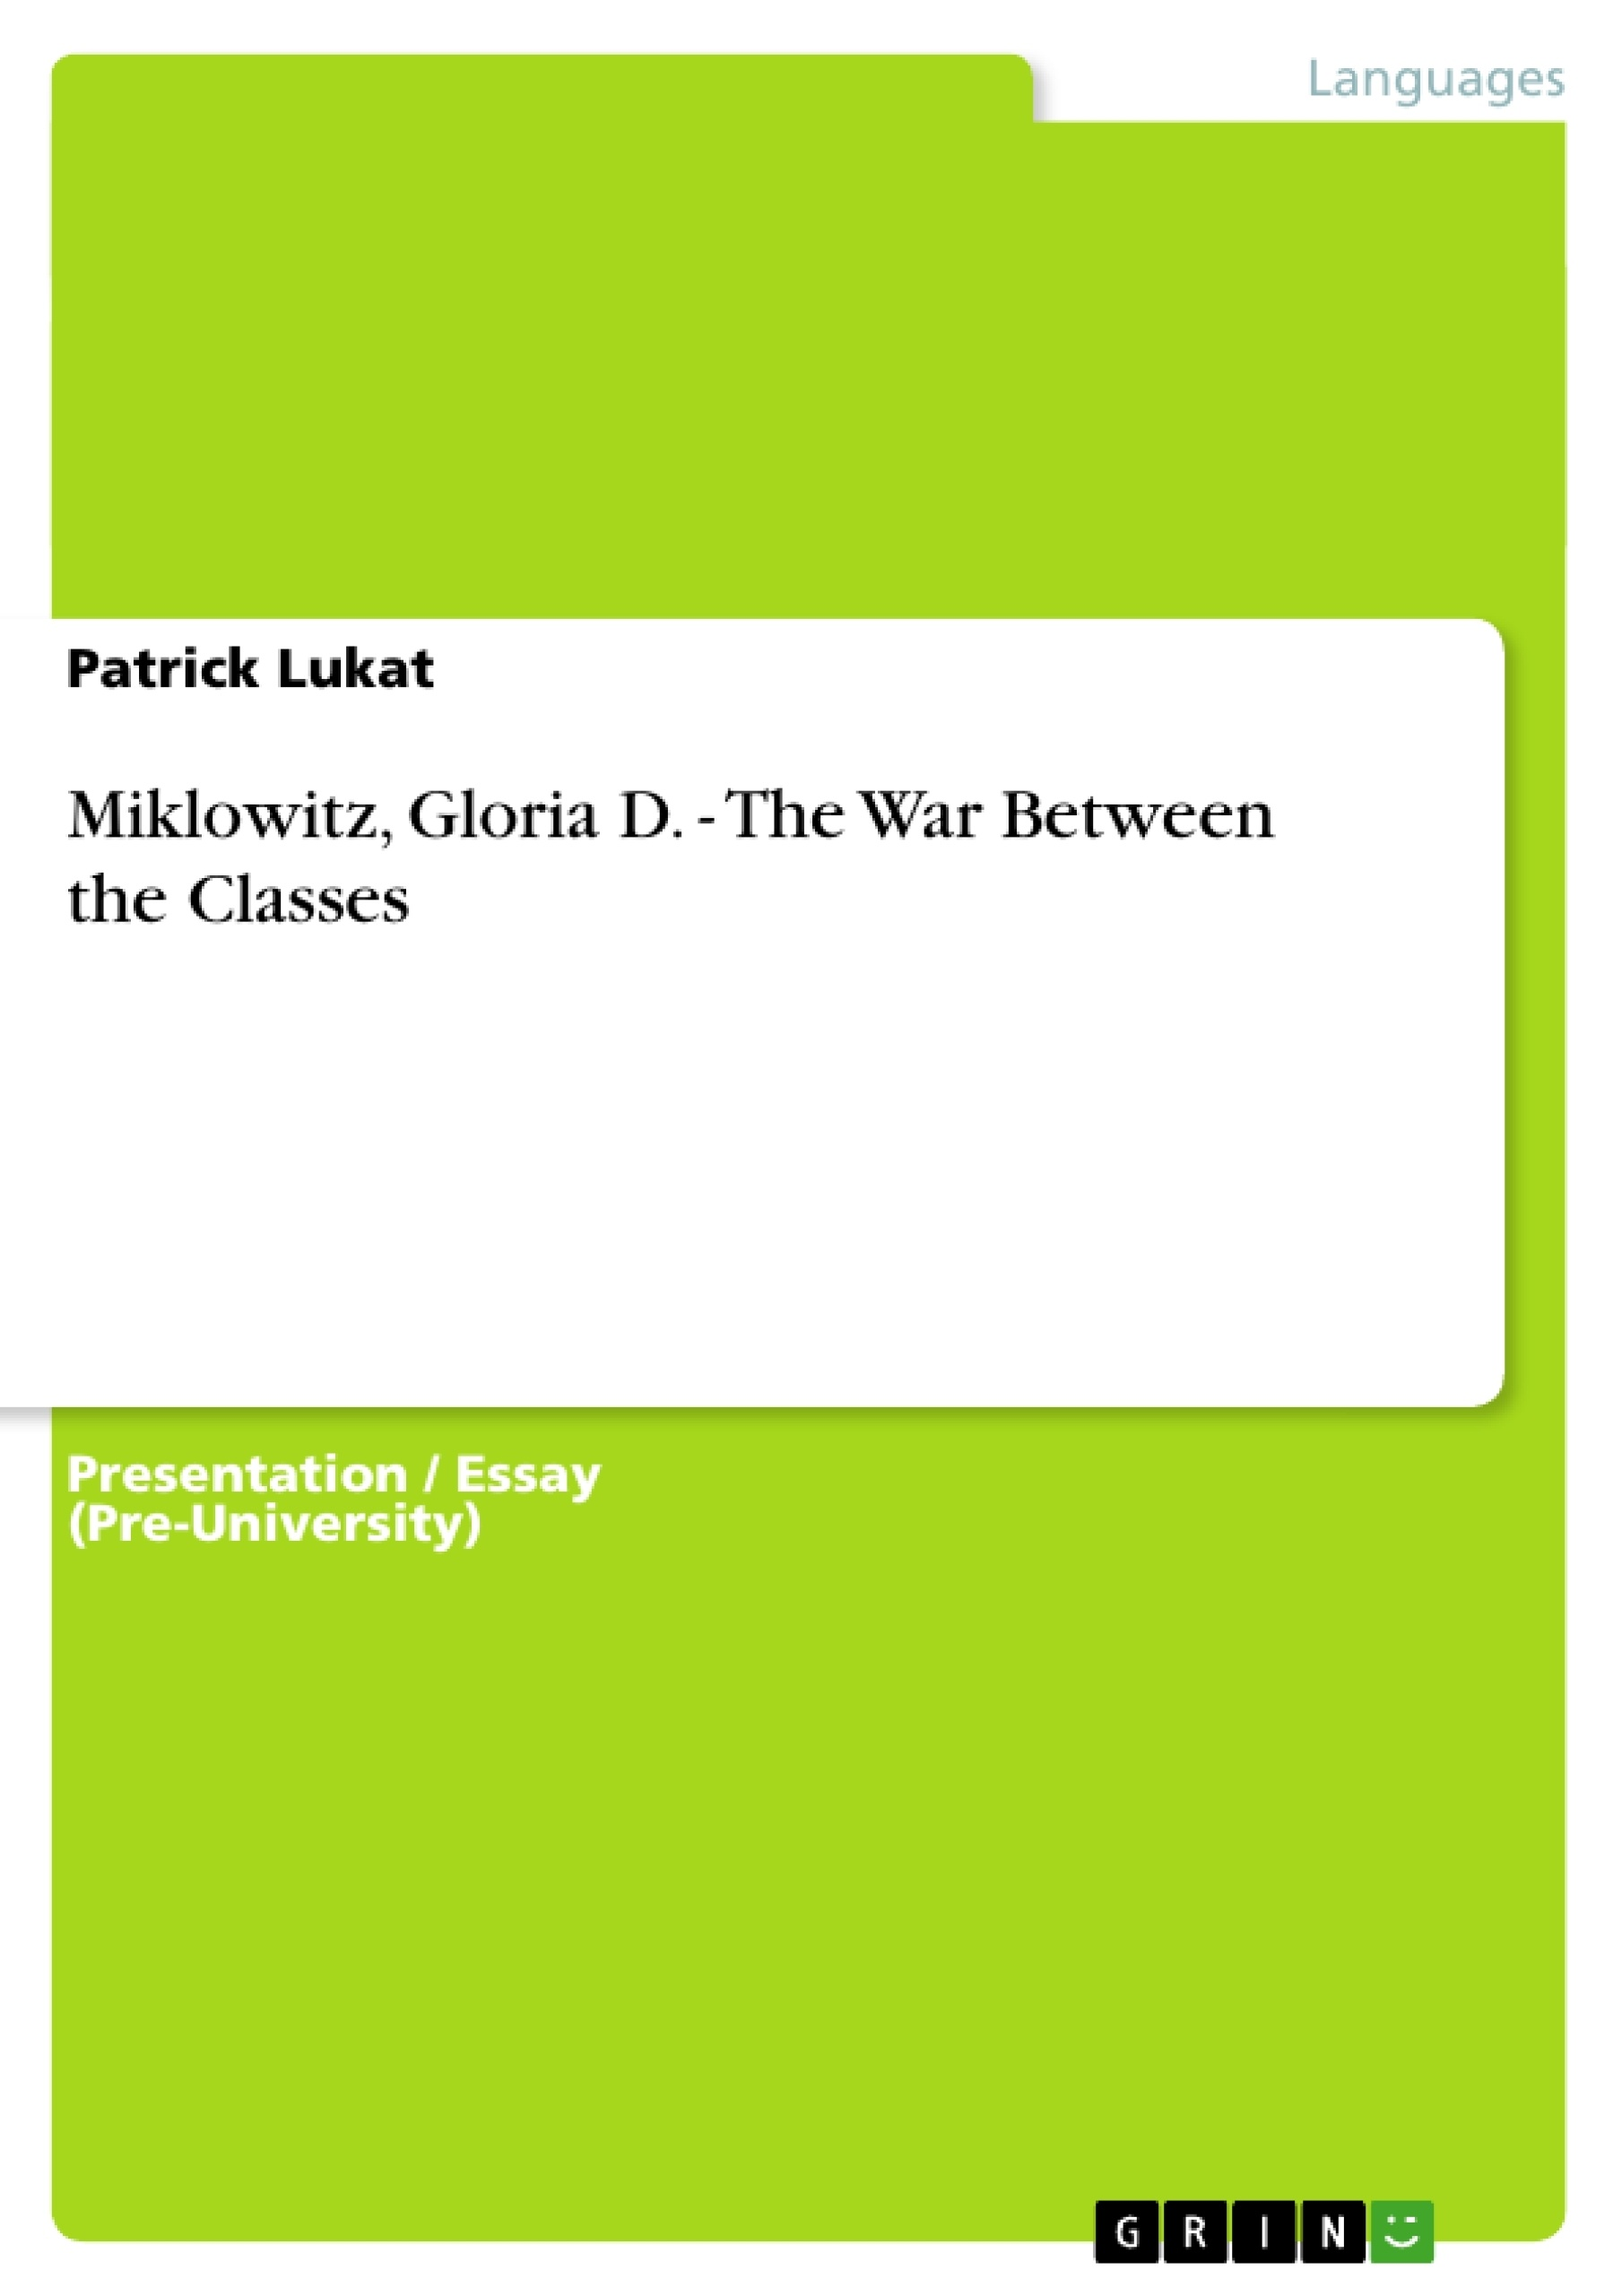 miklowitz gloria d the war between the classes publish your miklowitz gloria d the war between the classes publish your master s thesis bachelor s thesis essay or term paper